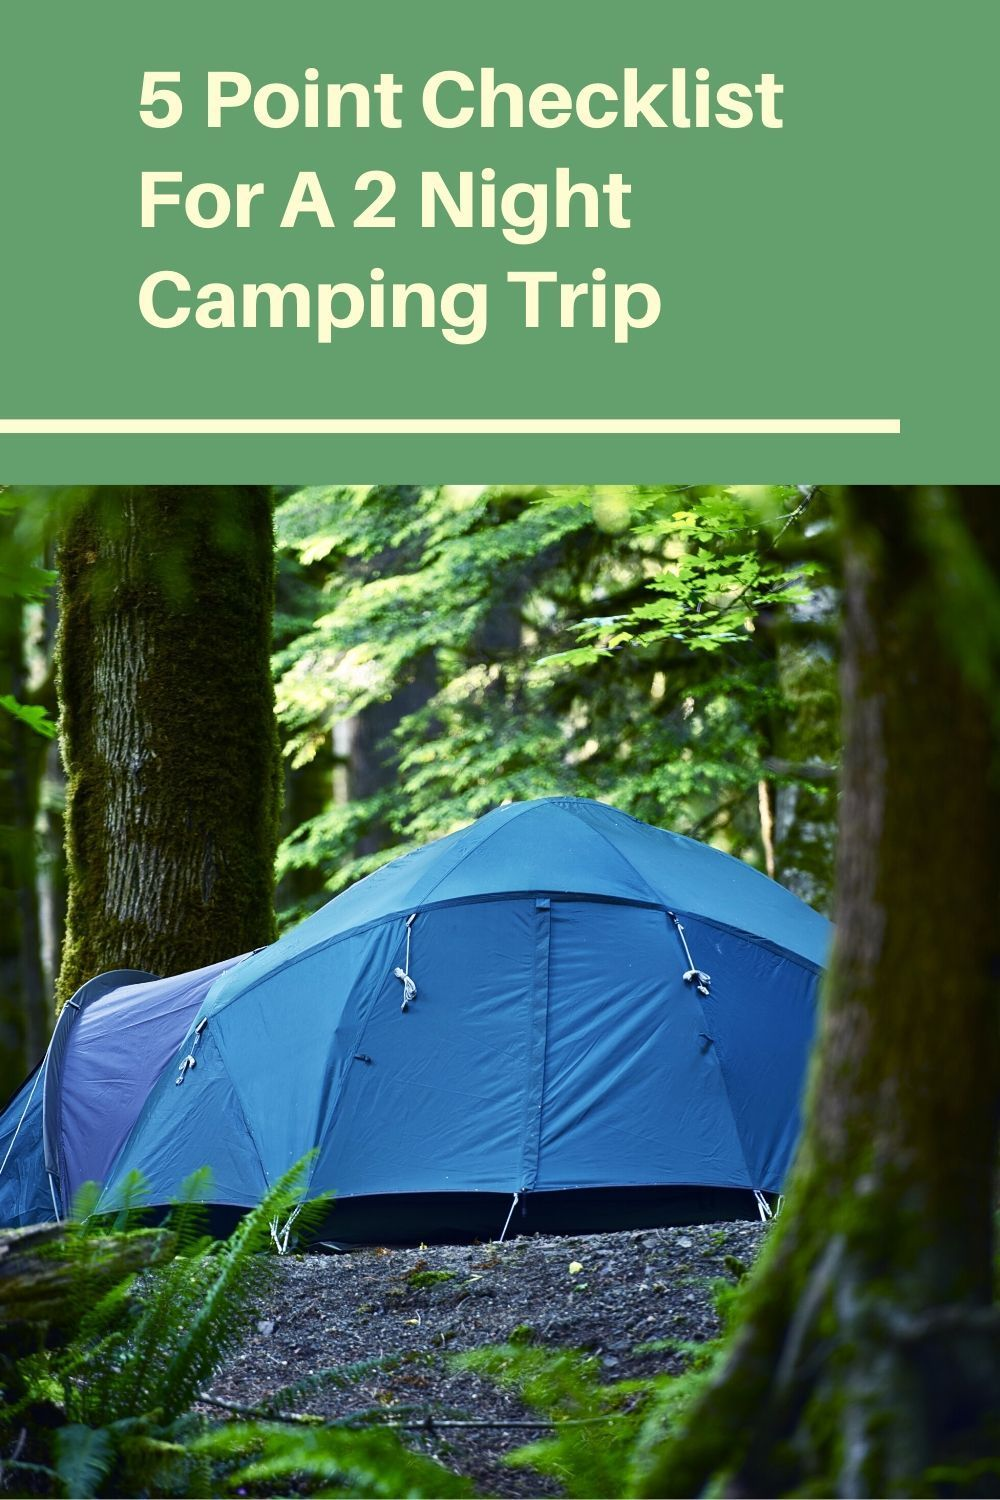 5 Point Checklist For A 2 Night Camping Trip Camping Trips Trip Winter Camping